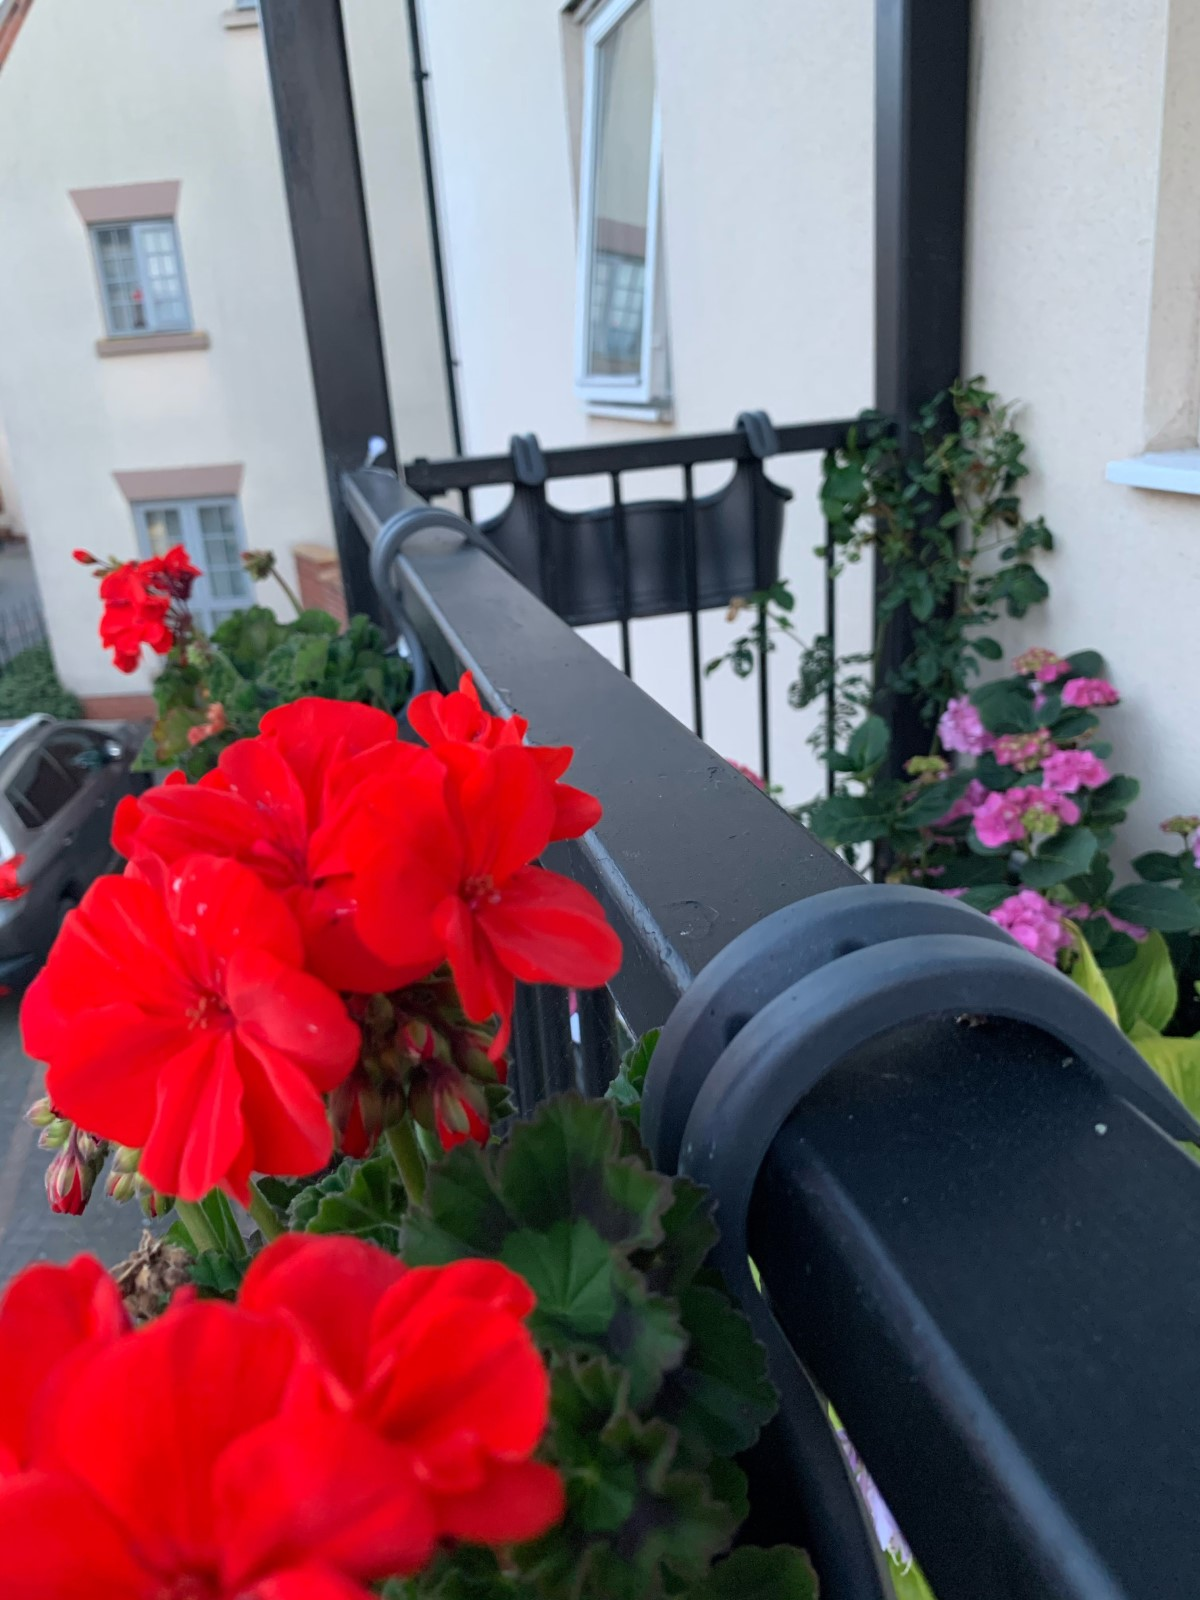 A close-up photograph of the dark grey metal railing of a balcony, with red flowers hanging off it in the foreground, and some pink flowers resting on the balcony in the background.